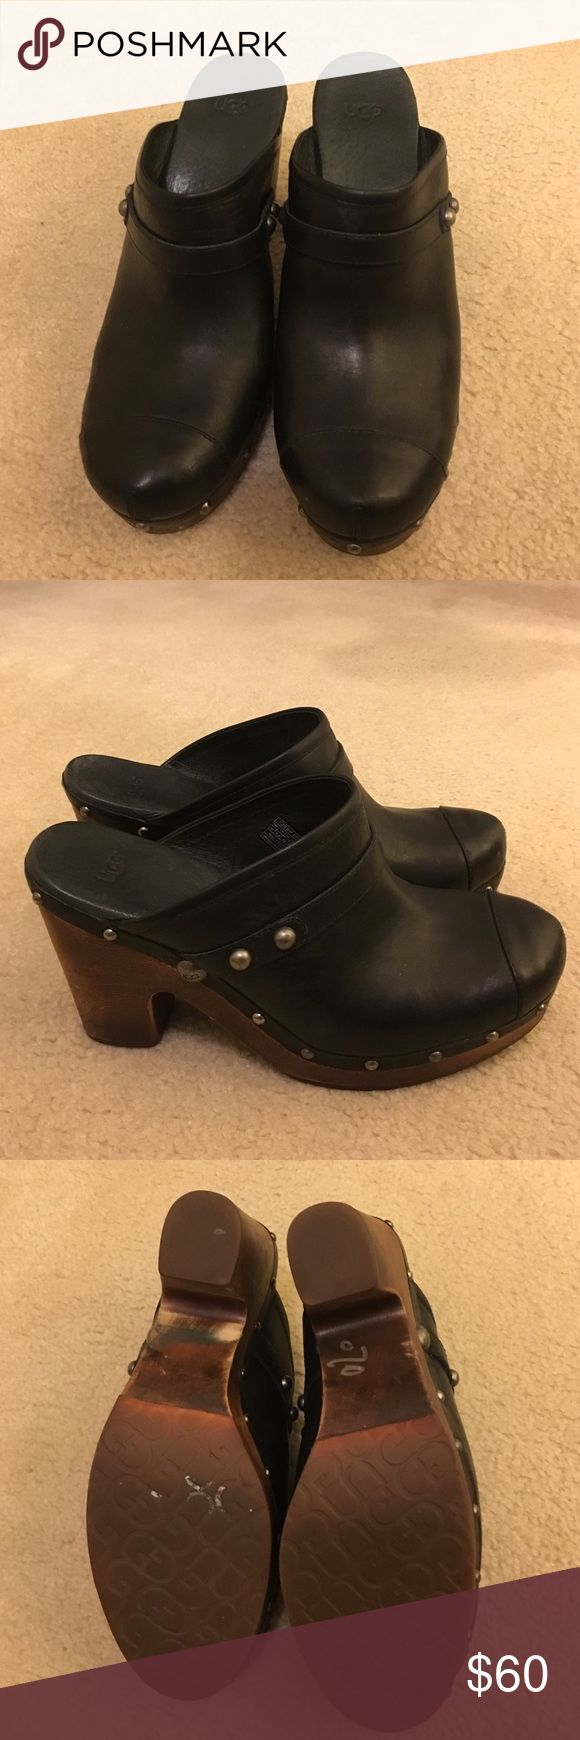 Ugg Clogs Black gently worn Ugg clogs UGG Shoes Mules & Clogs